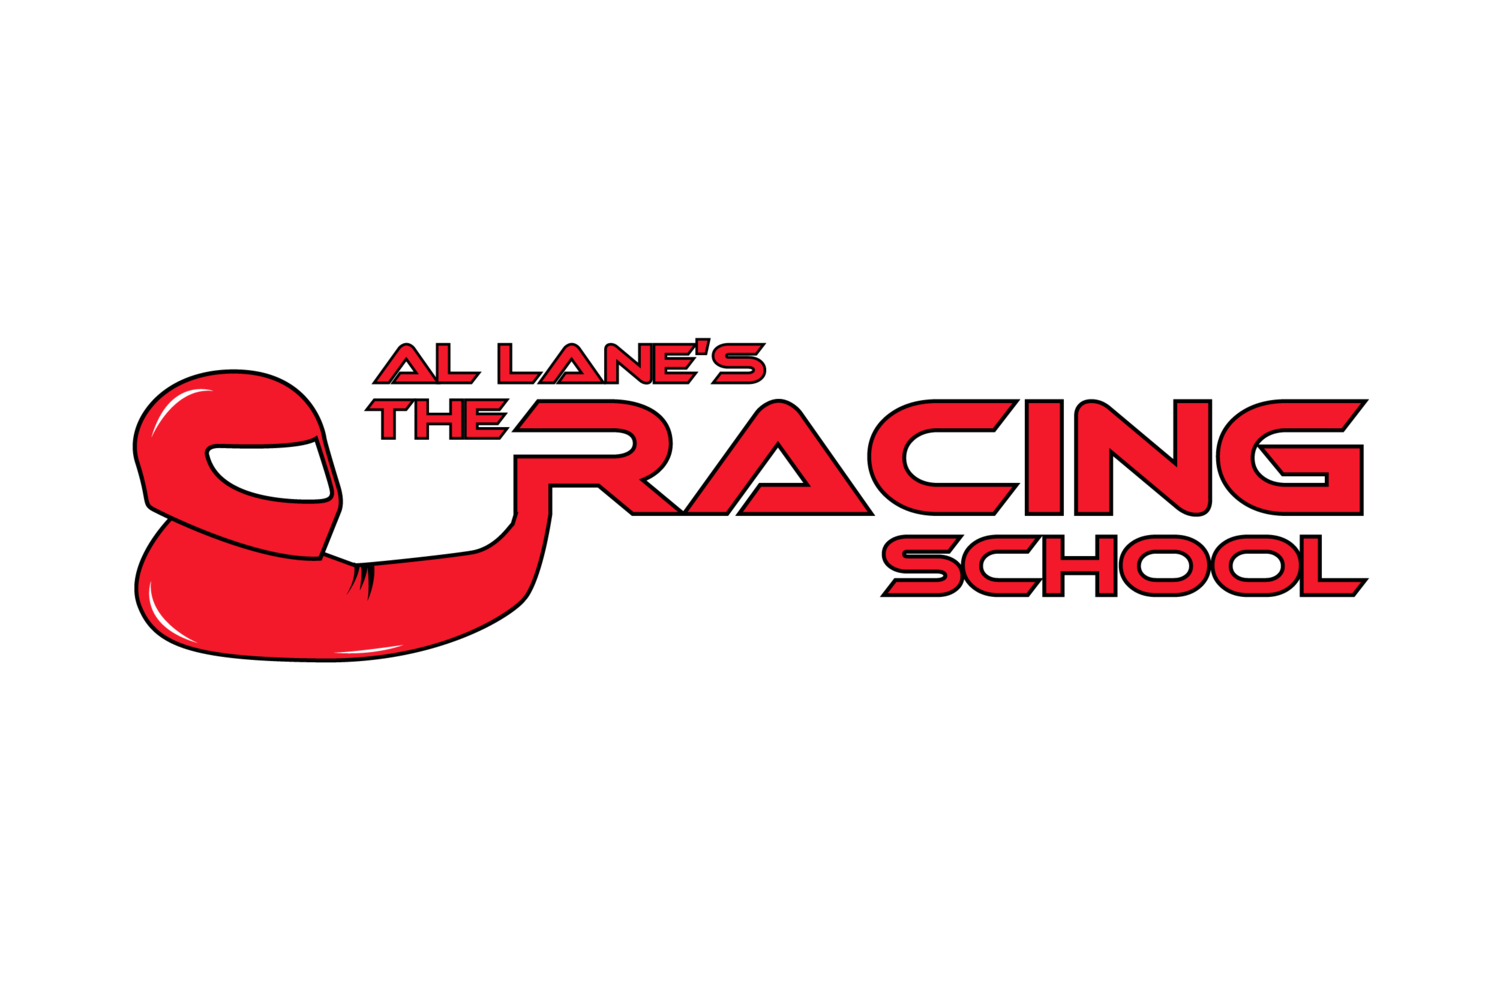 Al Lane's The Racing School